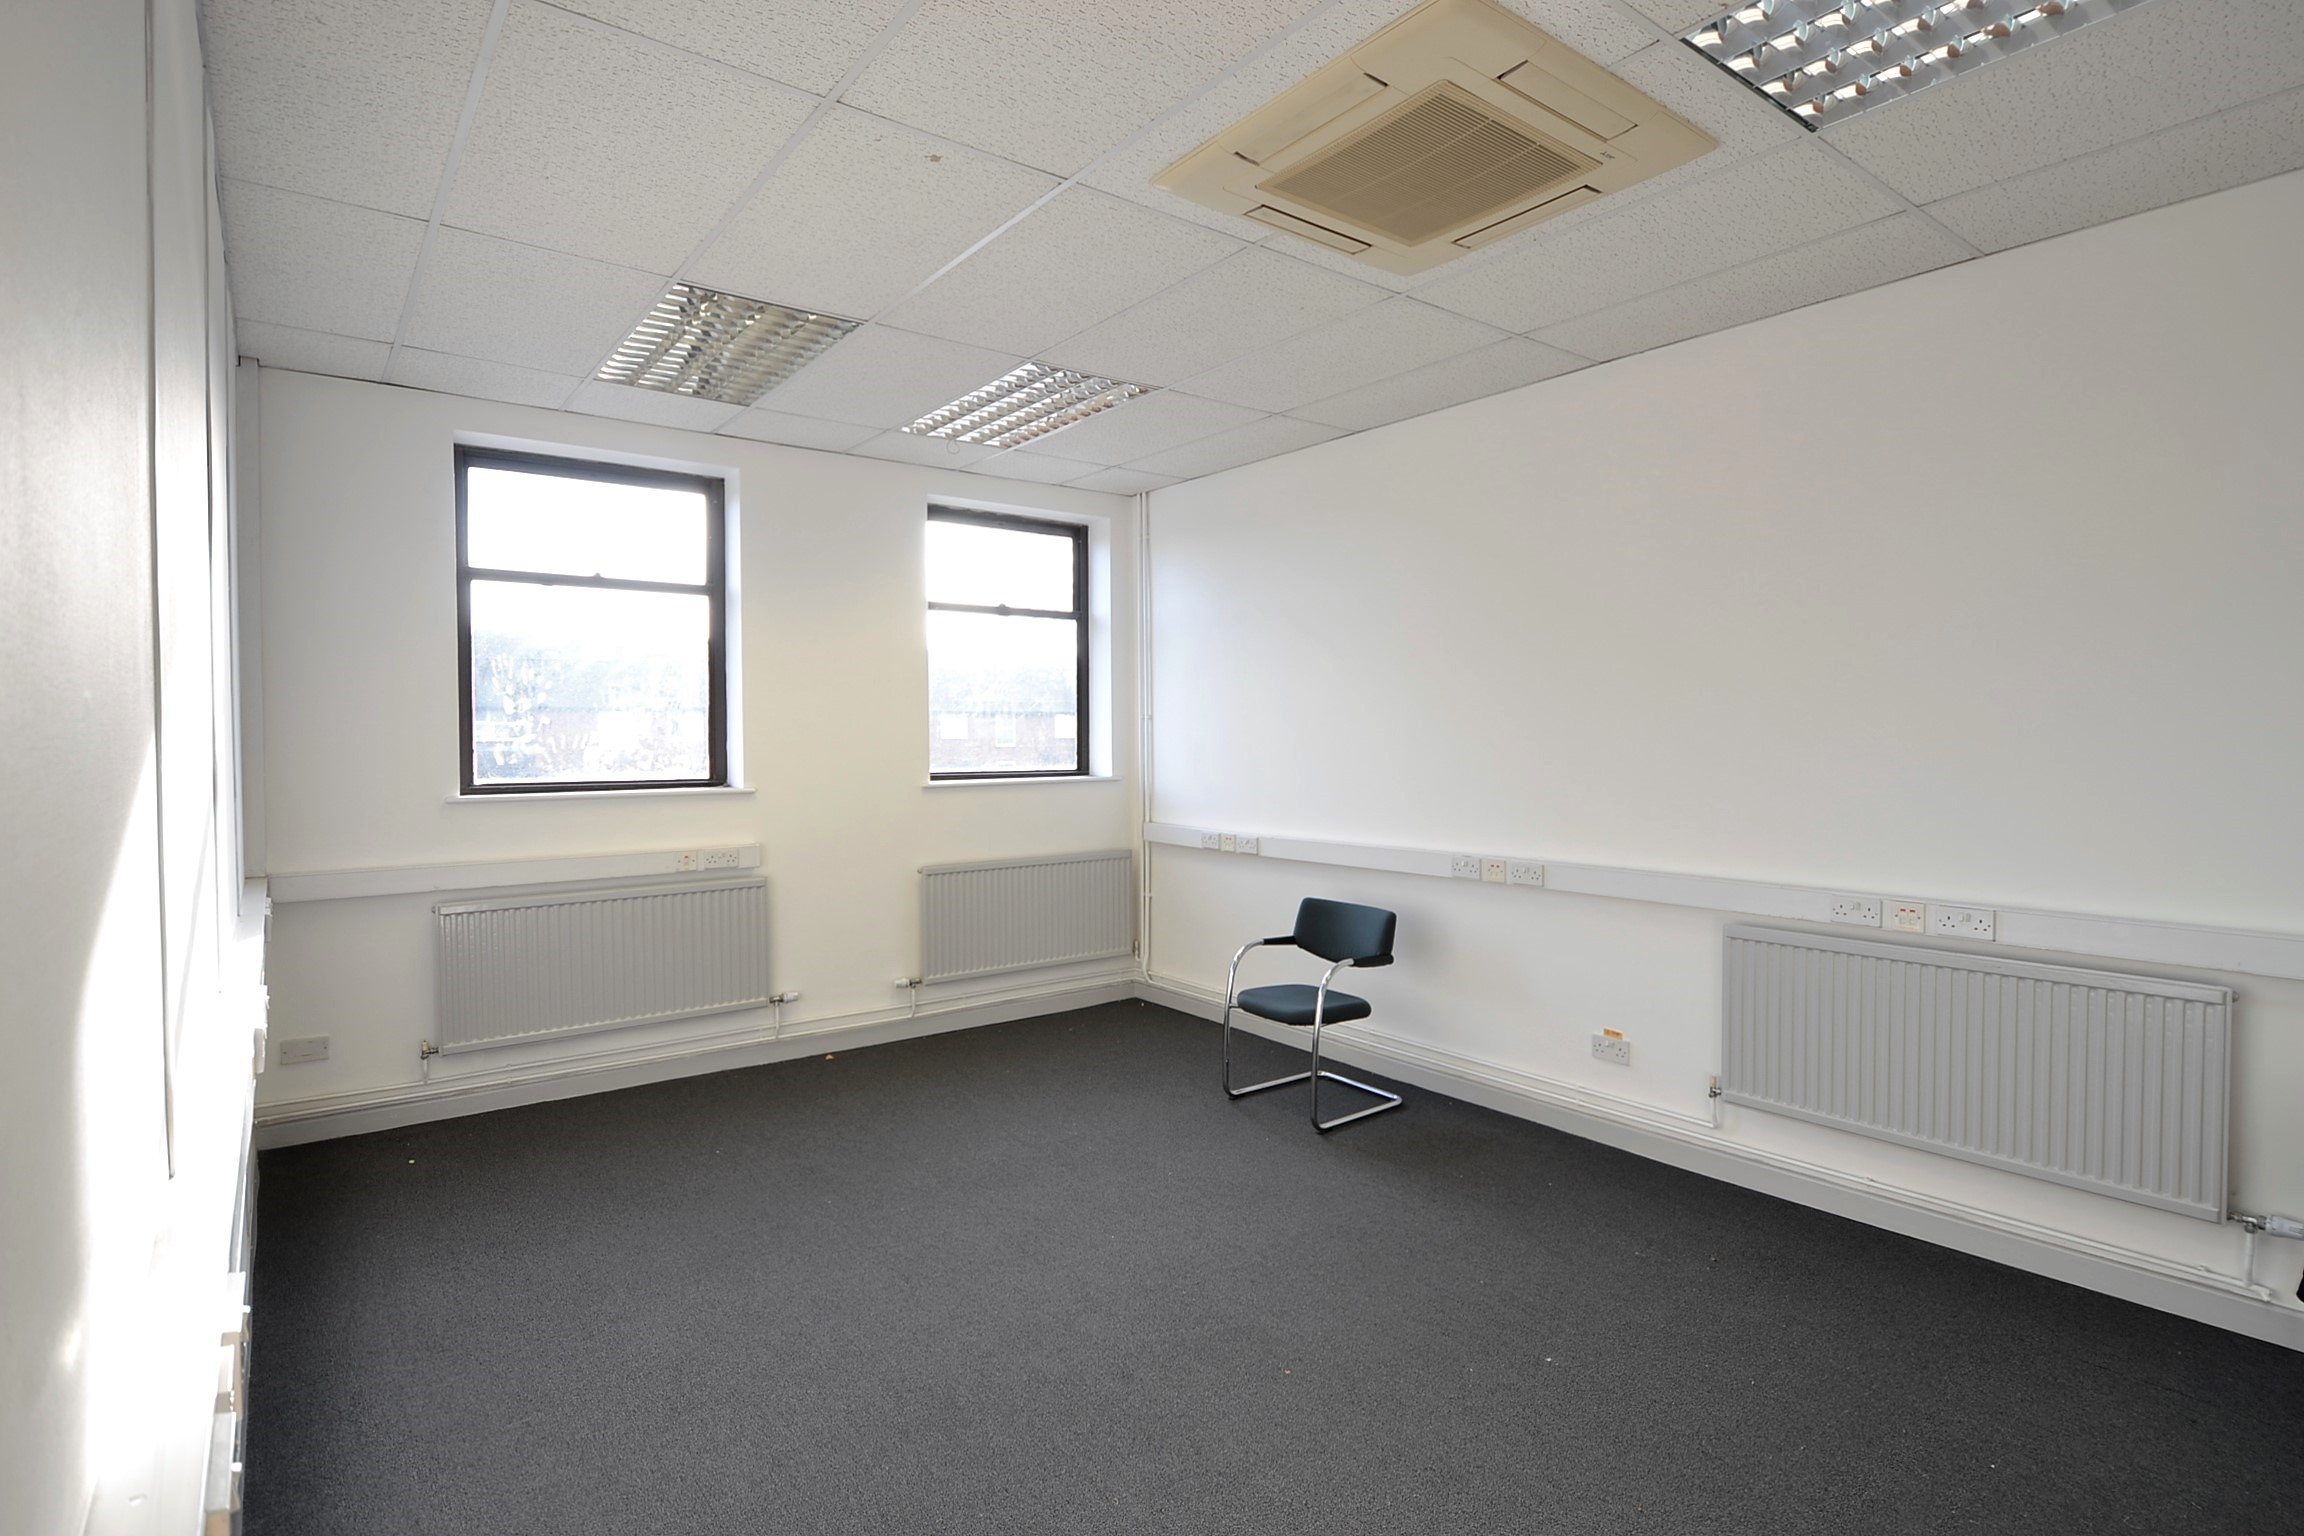 Offices 1A, 5/6 Market Place, Didcot, Oxfordshire OX11 7LE